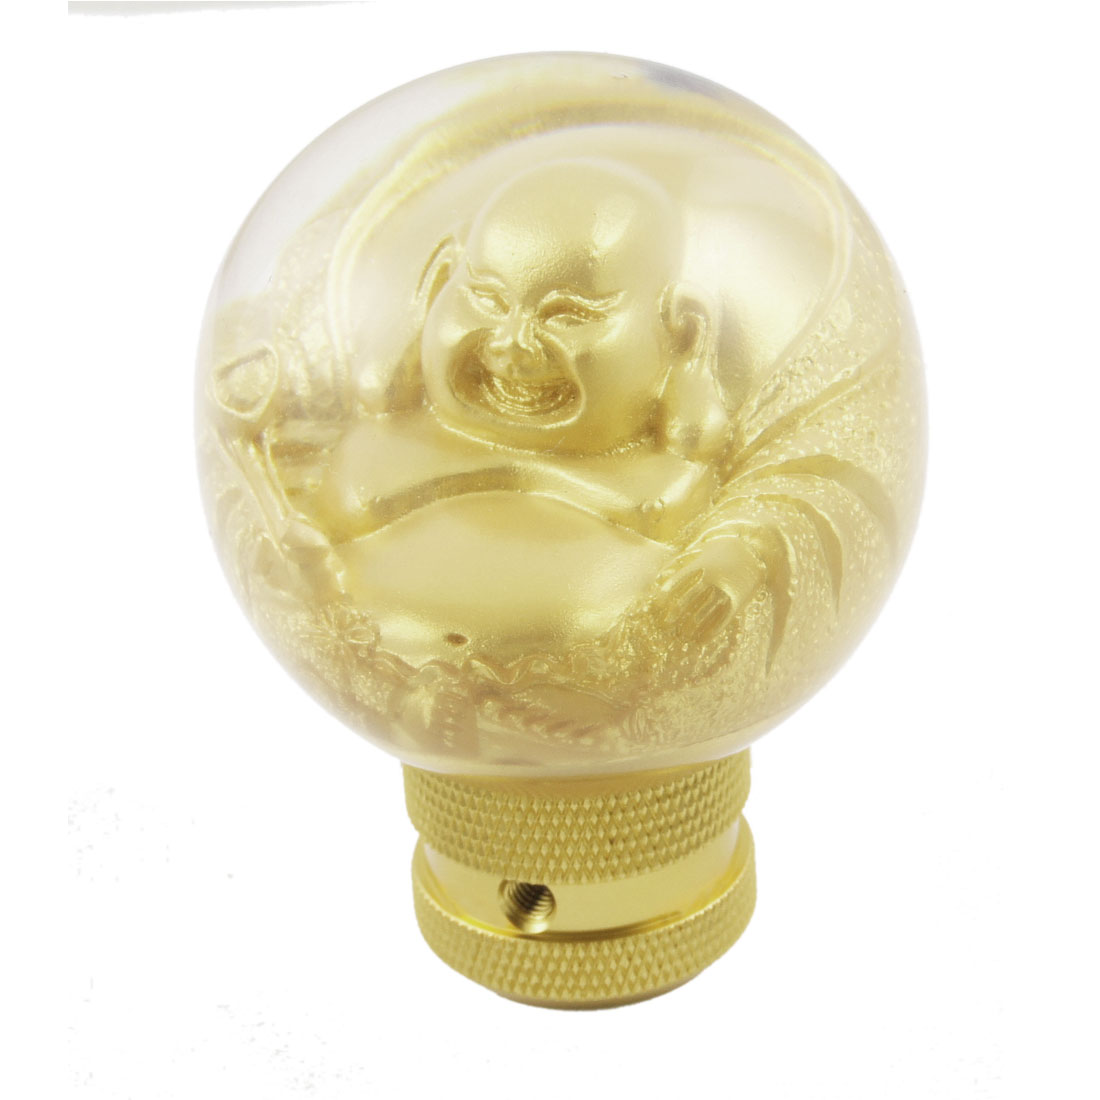 Gold Tone Chinese Buddha Designed Gear Shift Knob for Auto Car